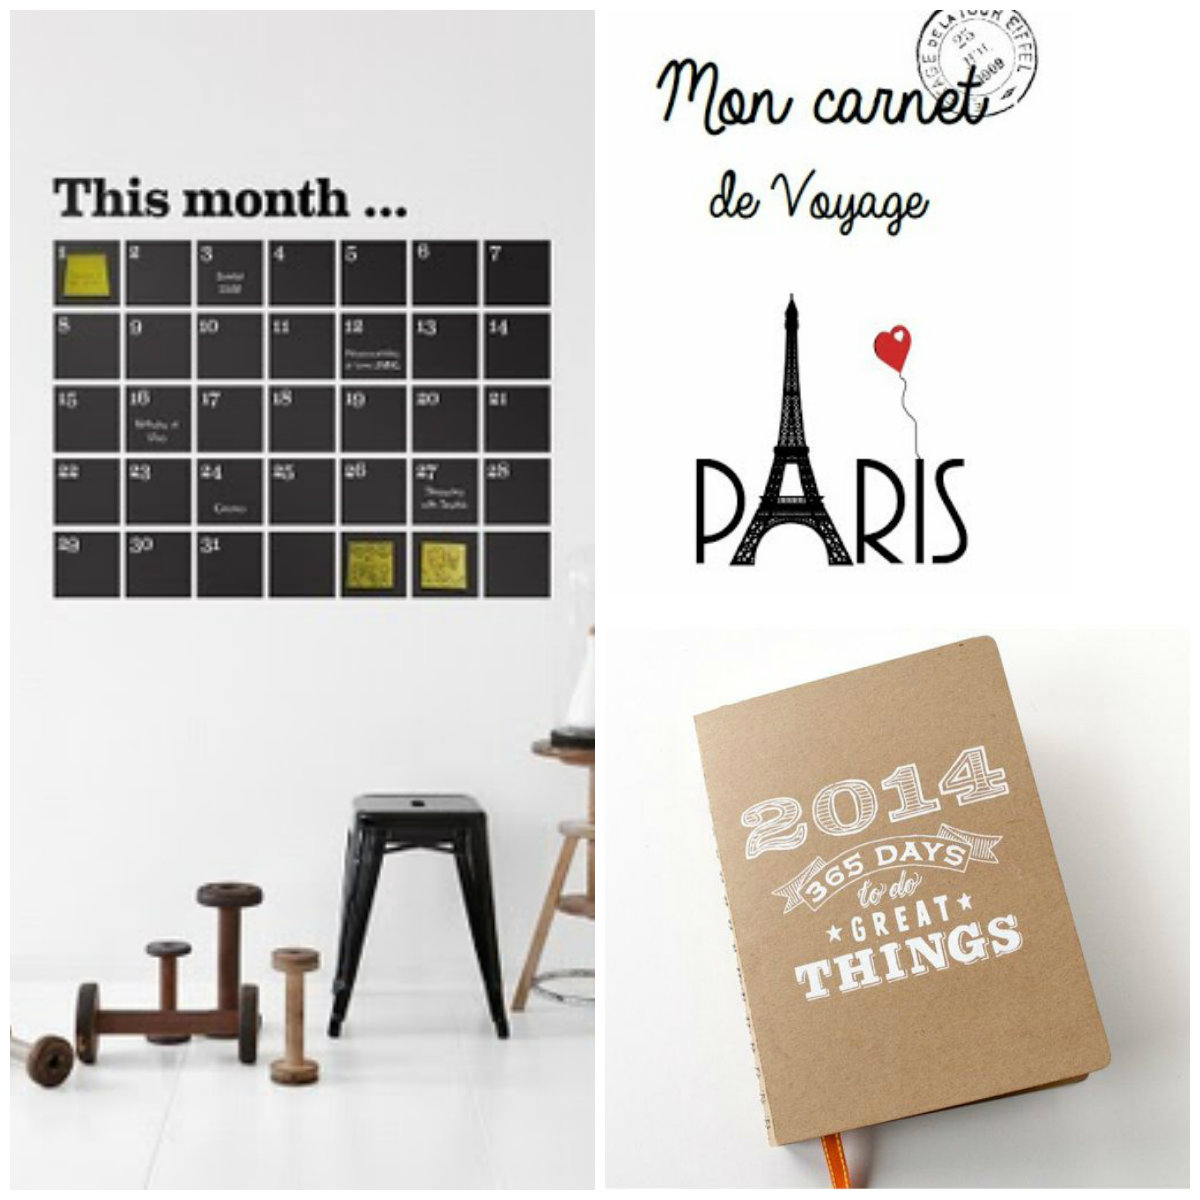 Paris fashion calendar